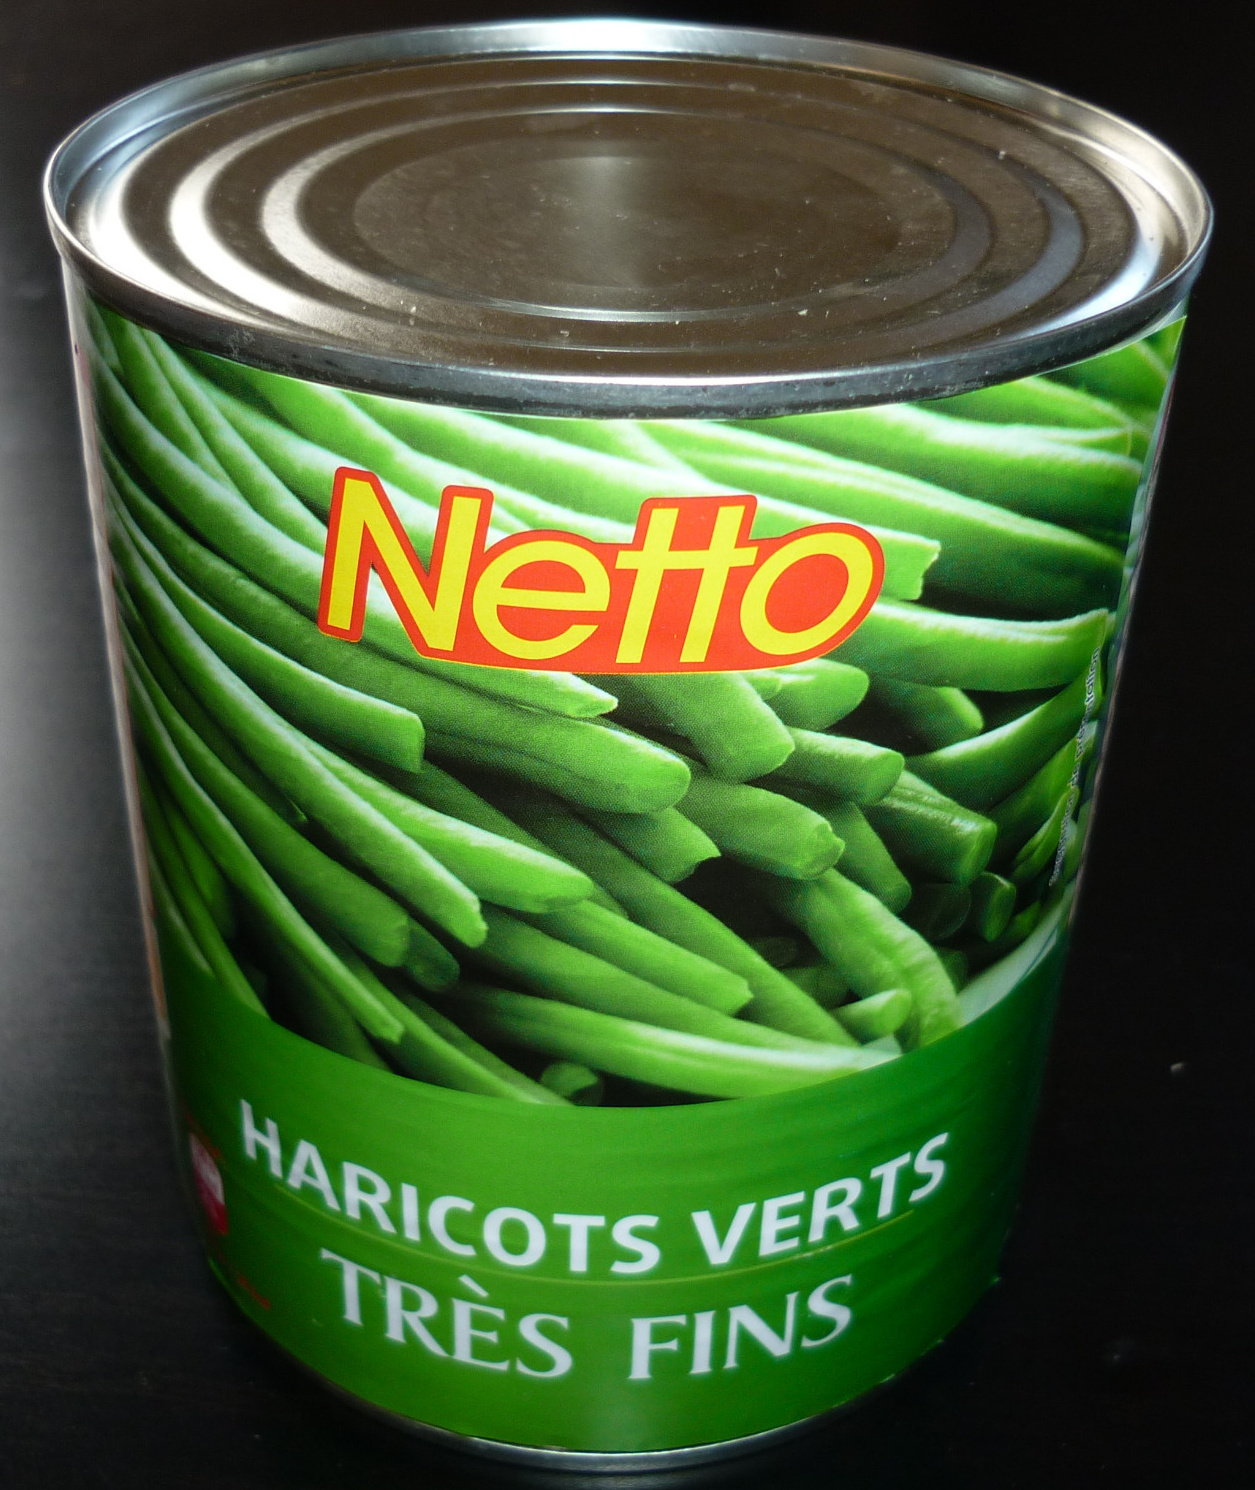 Haricots verts très fins - Product